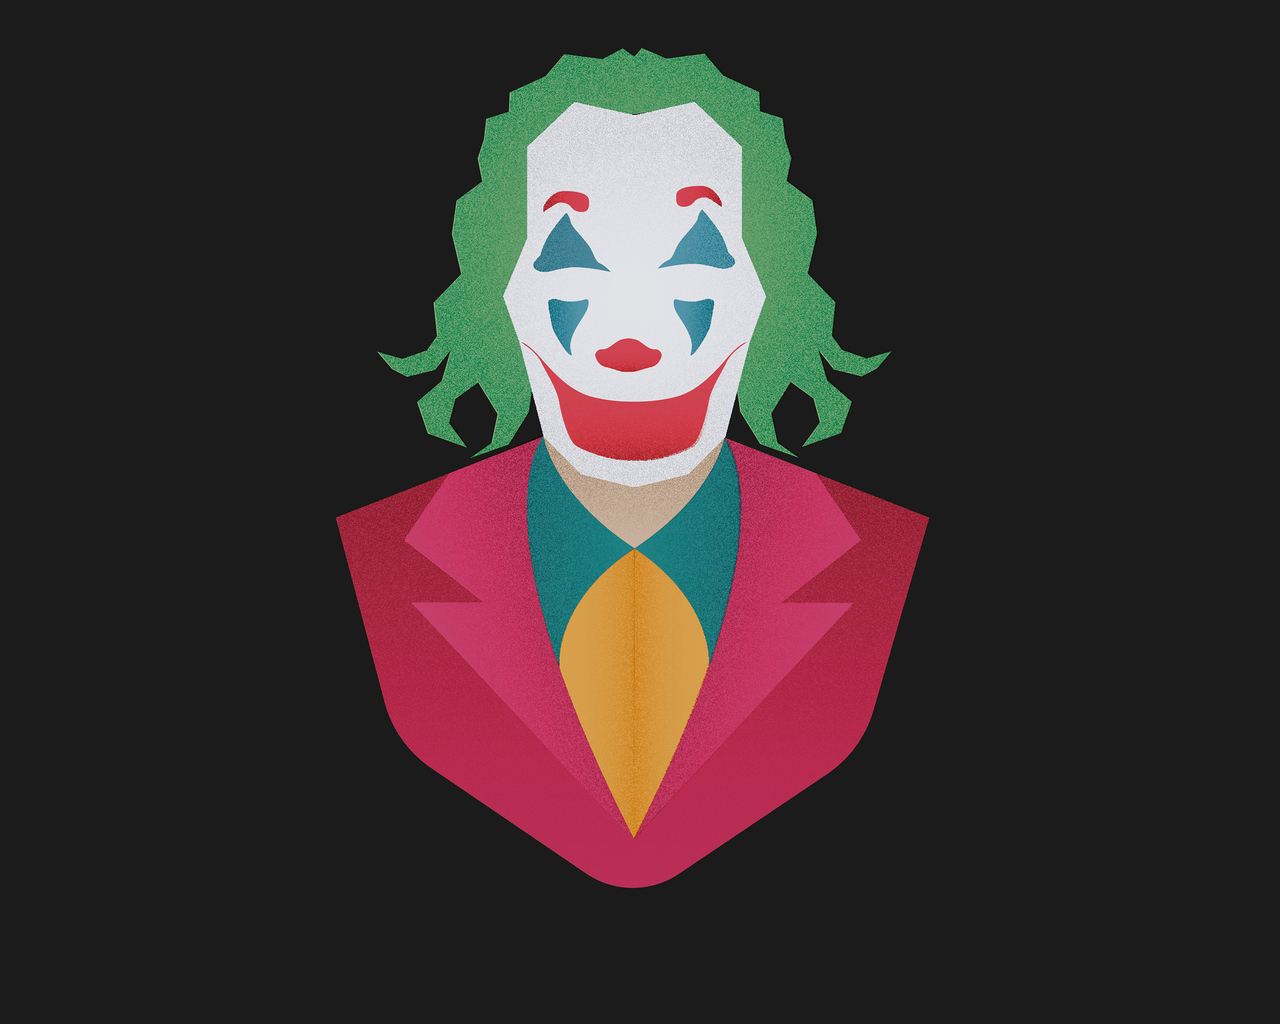 joker-movie-minimalism-ji.jpg